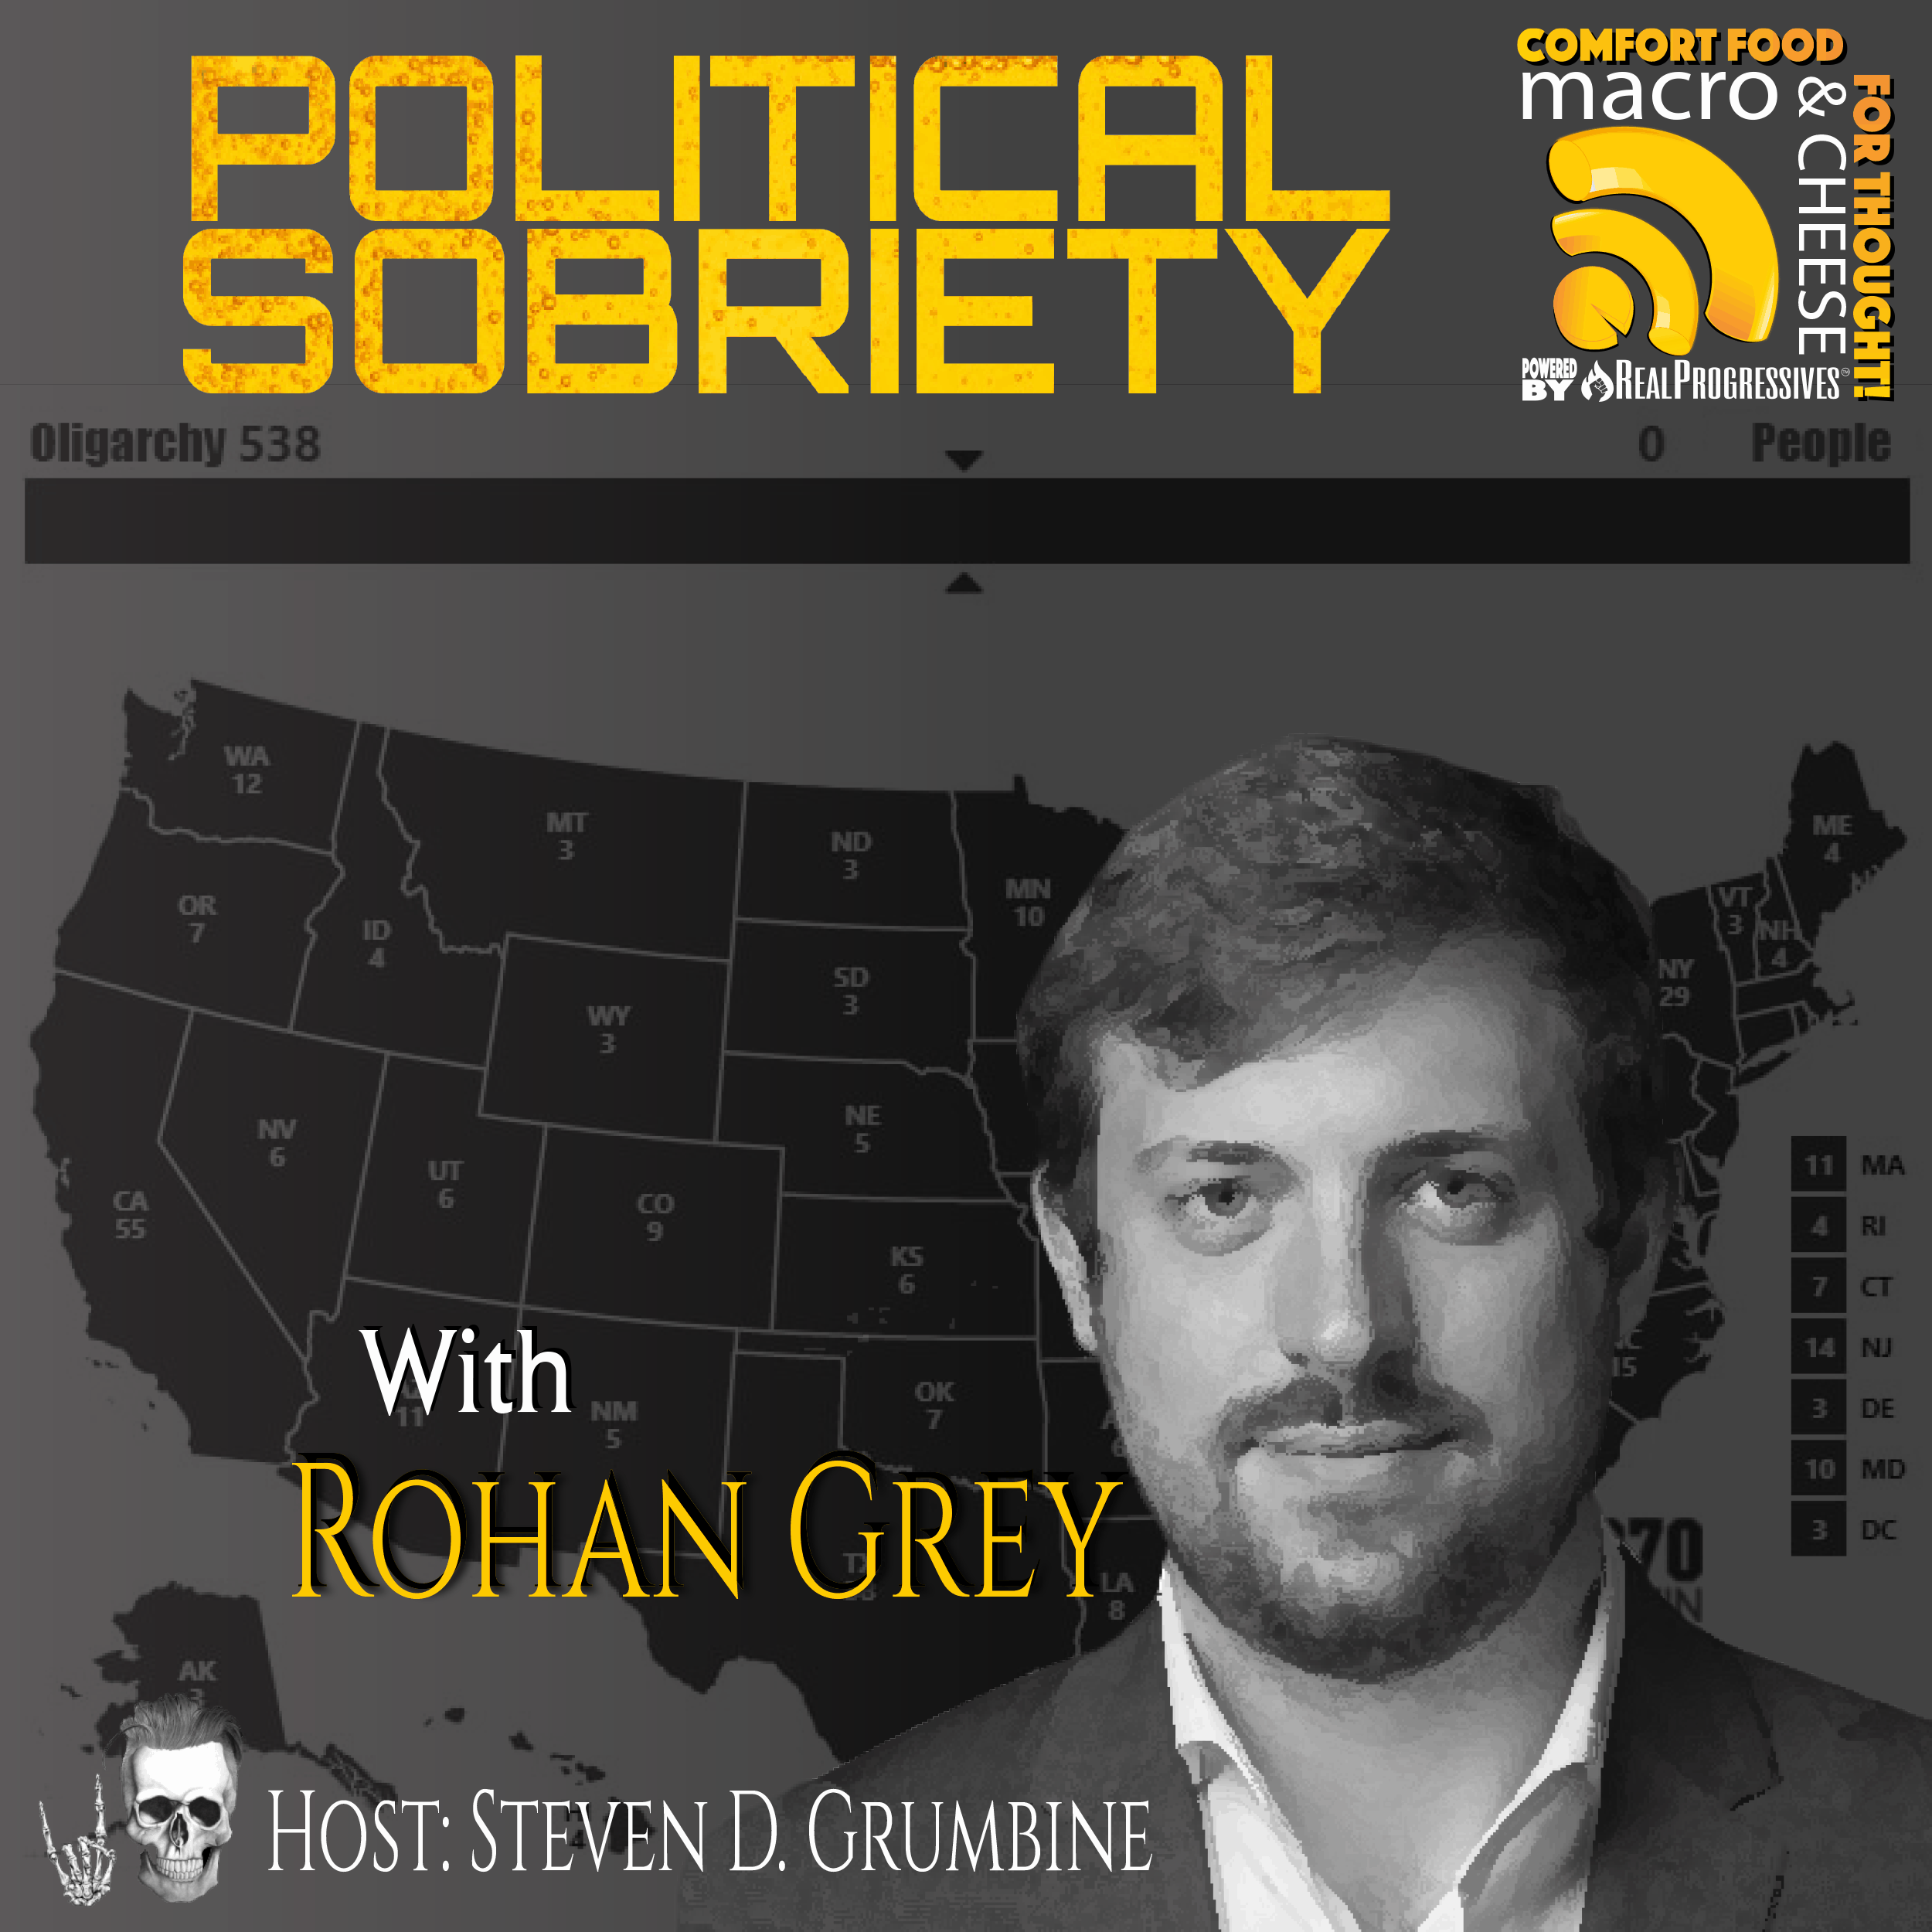 Episode 94 - Political Sobriety with Rohan Grey